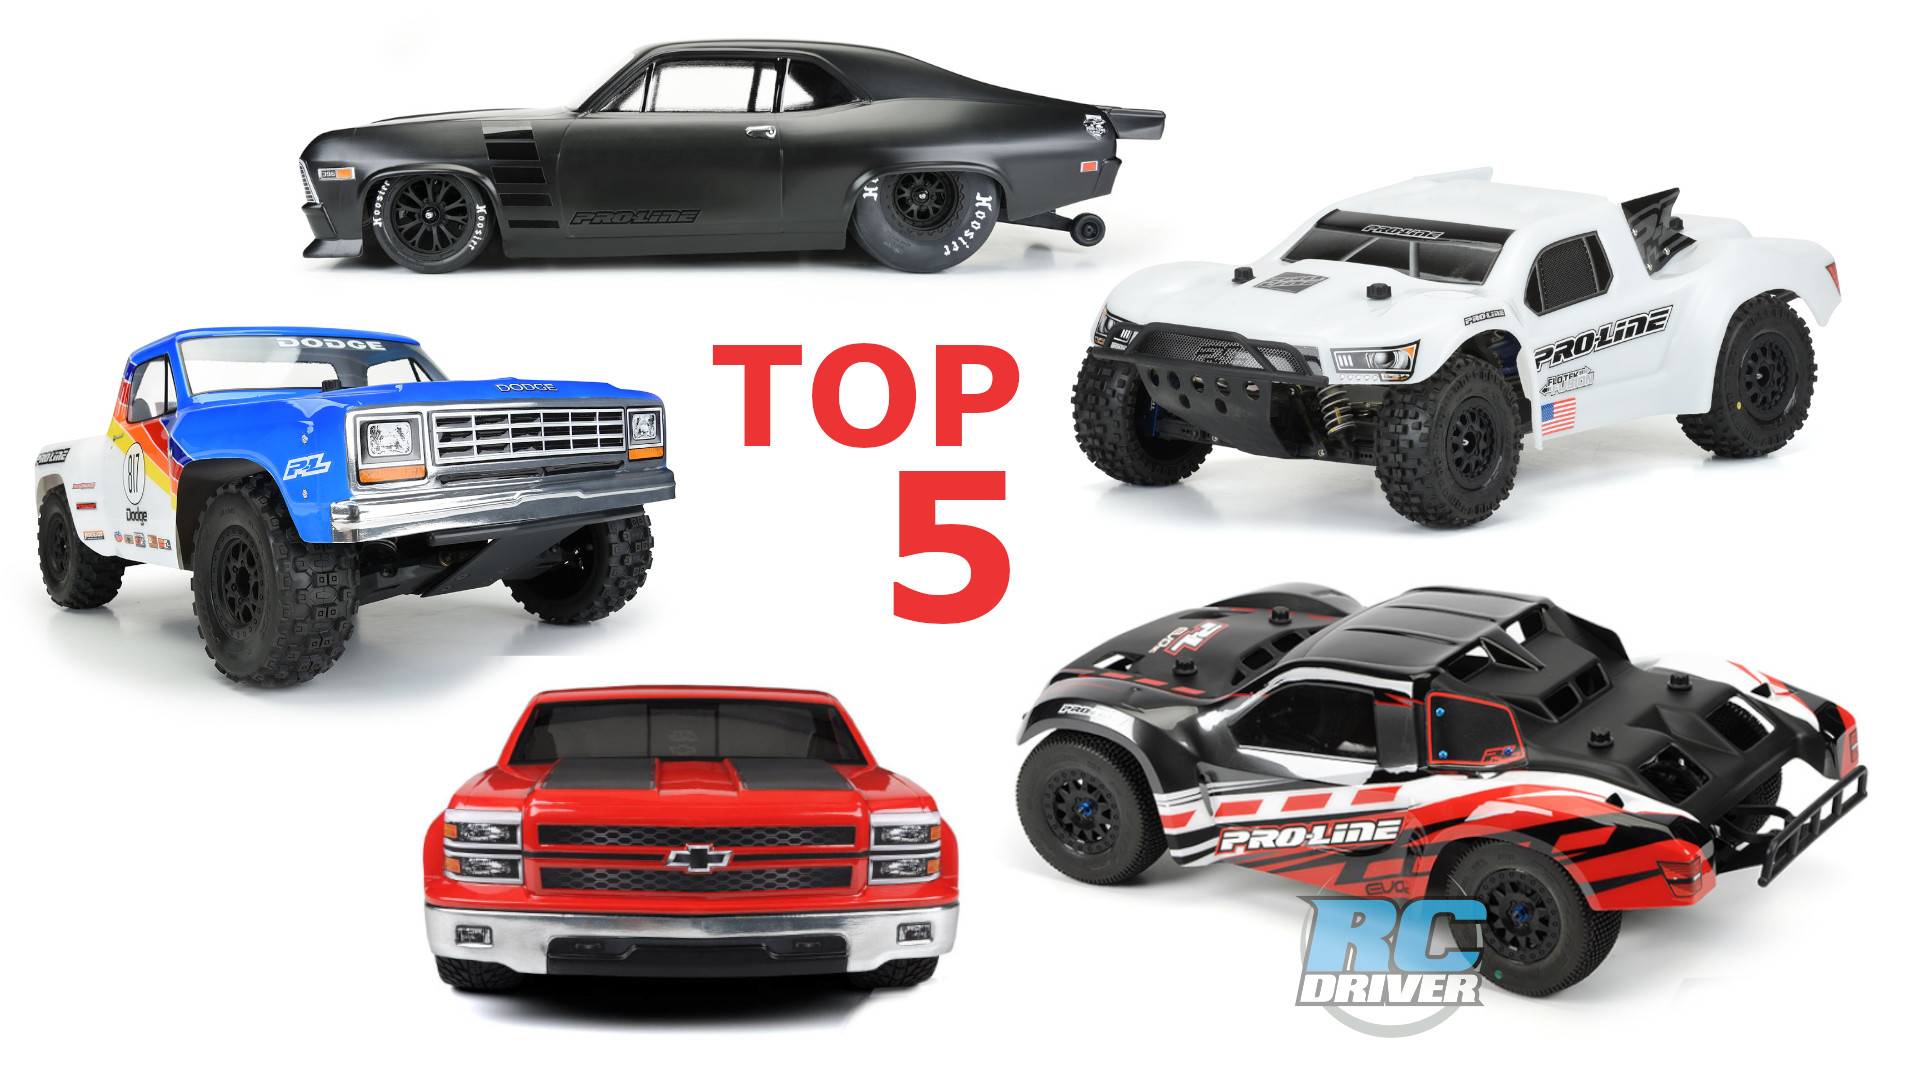 Our Top 5 Pro-Line body picks for the ECX Torment